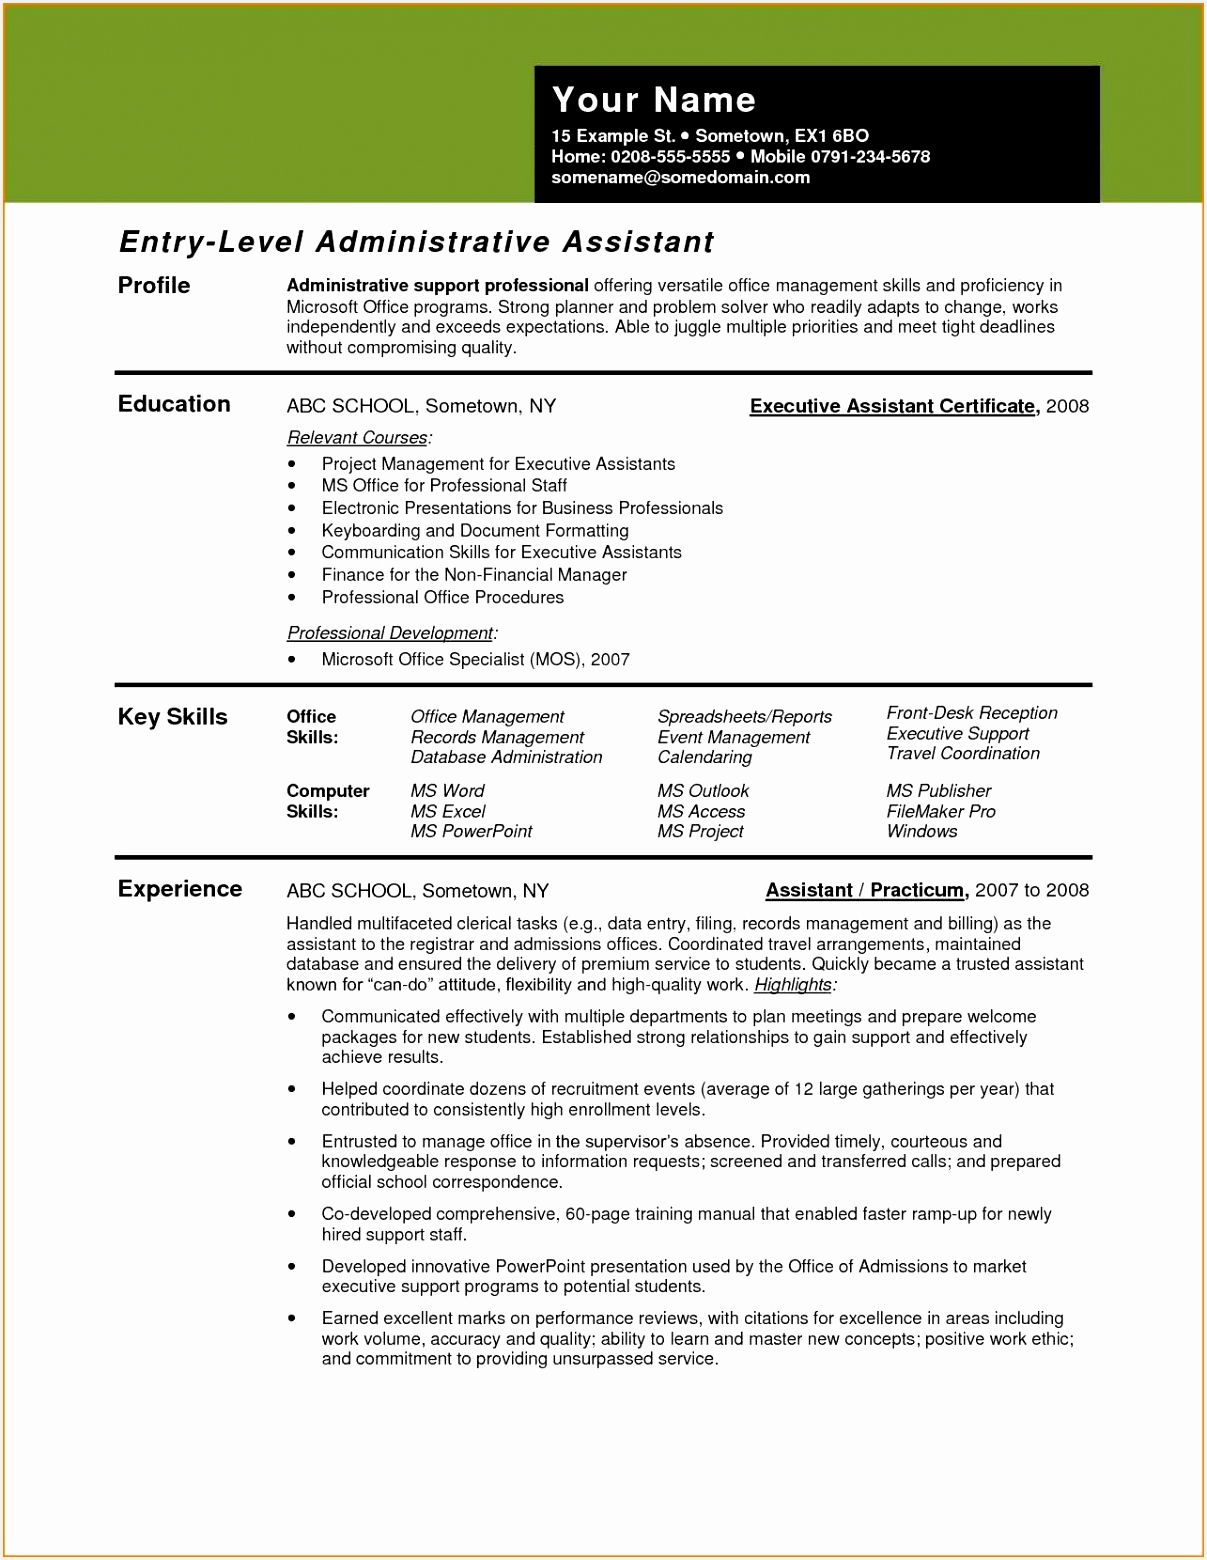 Full Size of Sample Resume Format Administrative Assistant New Samples For Examples Template Executive Beautiful Ssis 15601207awgo